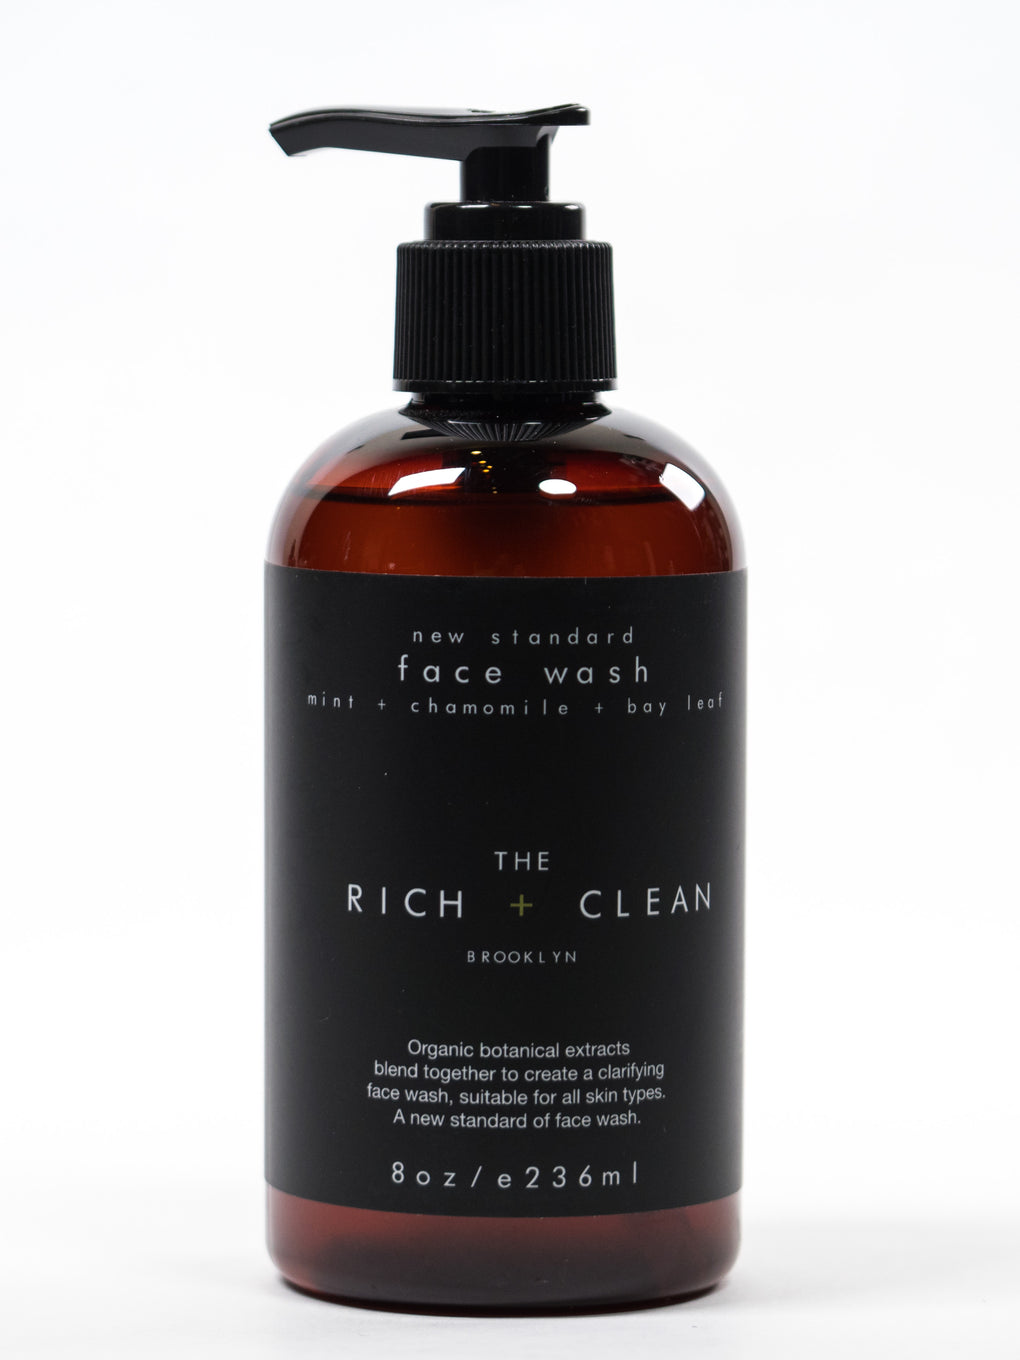 The Rich & Clean New Standard Face Wash at Consigliere